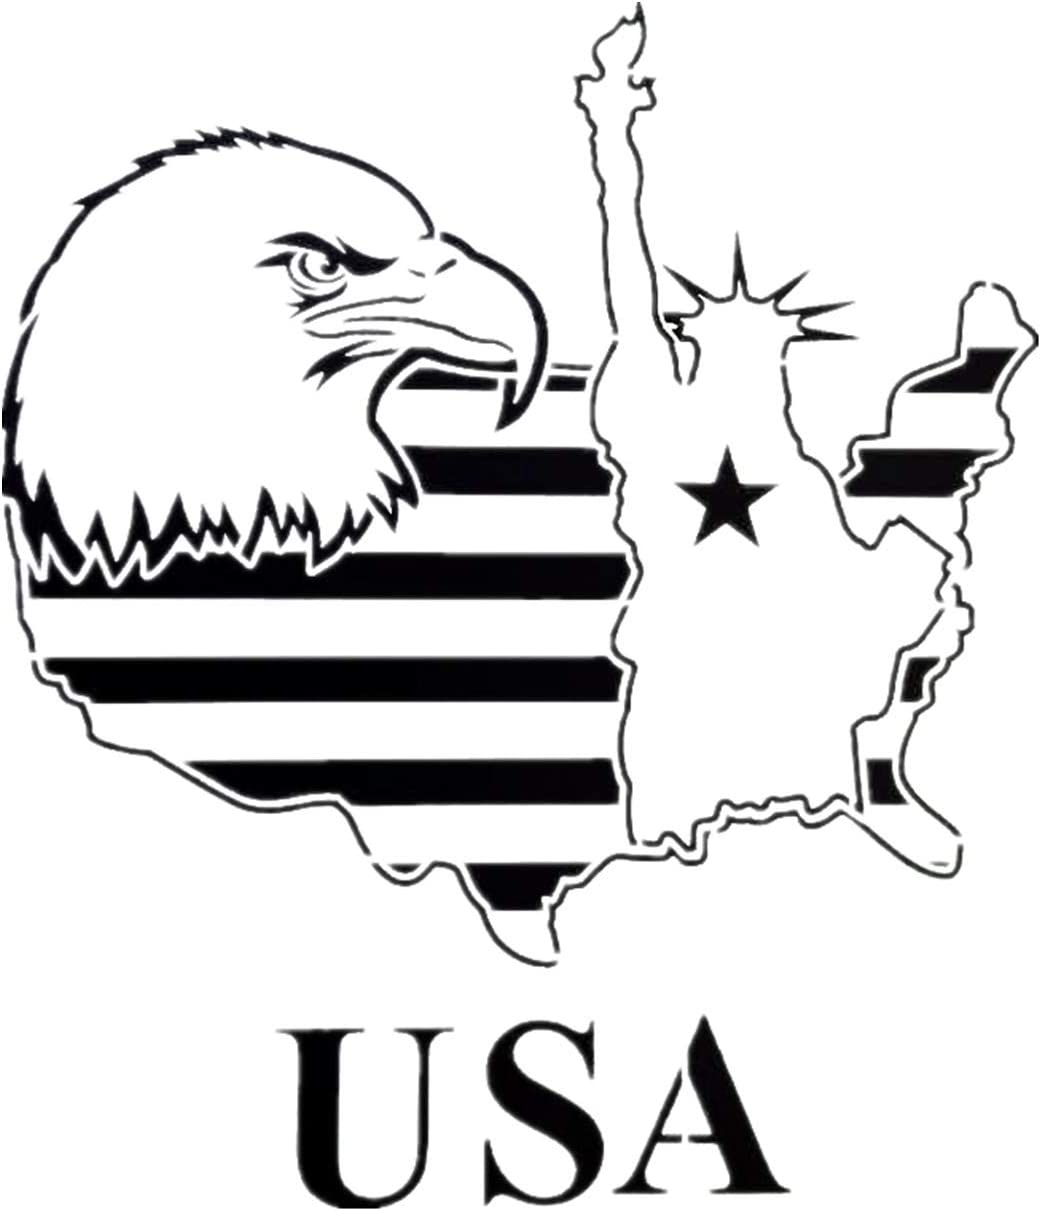 Statue Of Liberty Stencil//Template Reusable 10 mil Mylar